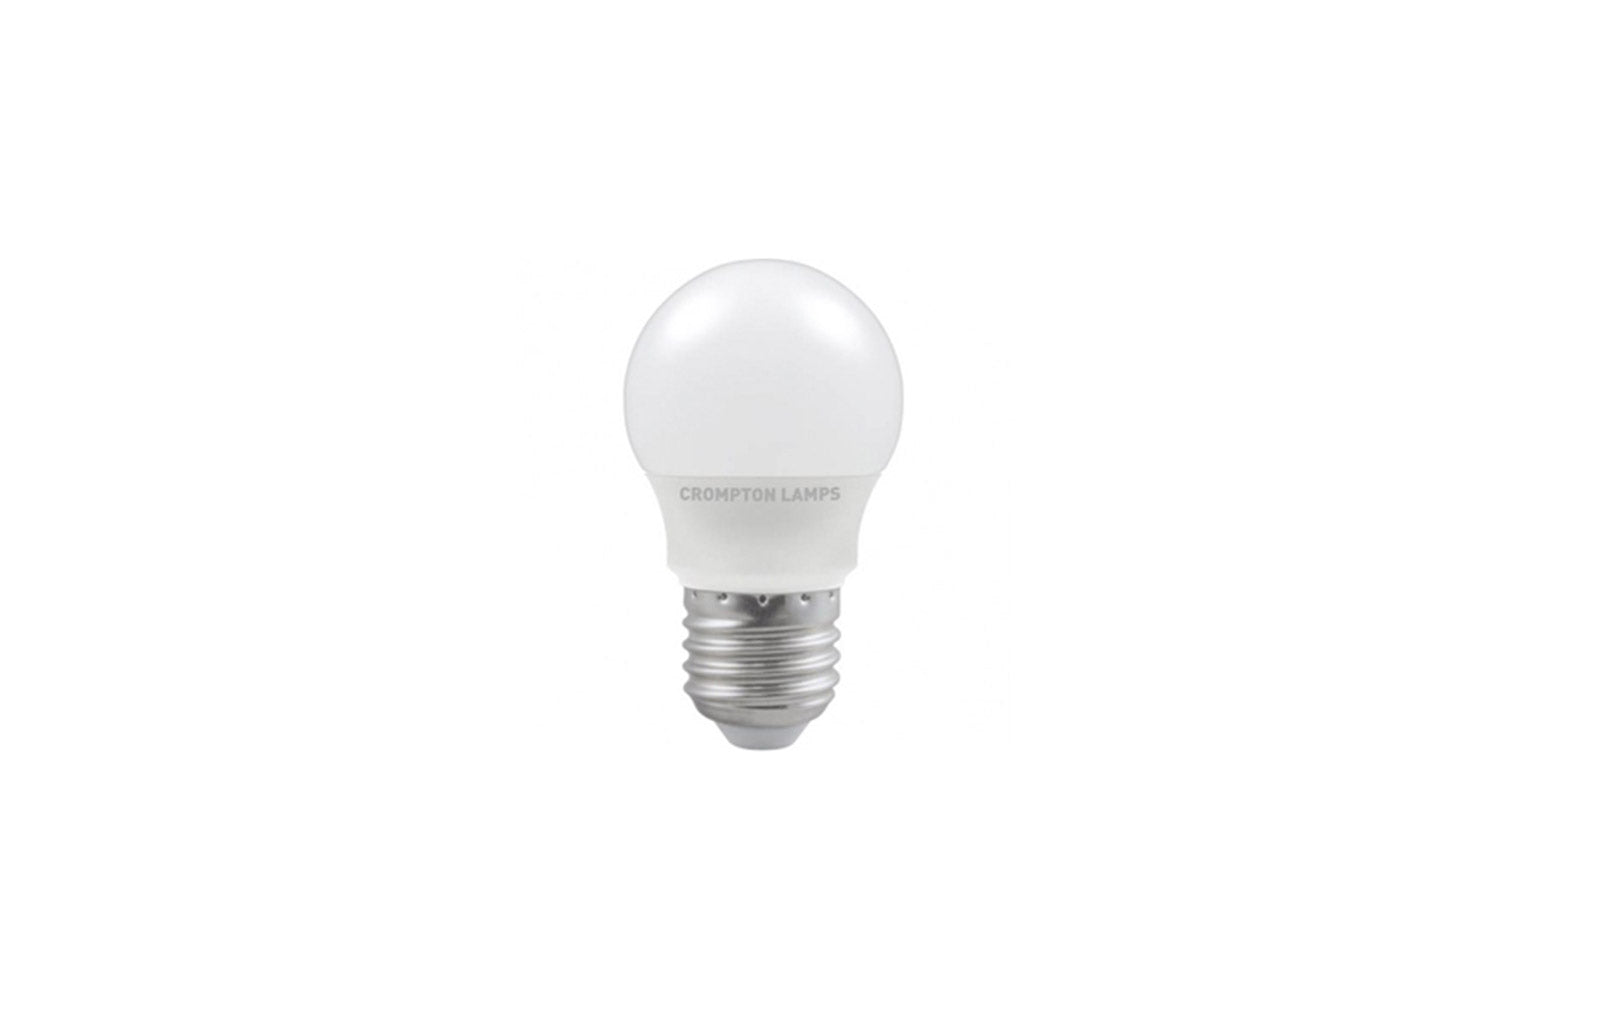 Crompton LED Light Bulb - golf ball